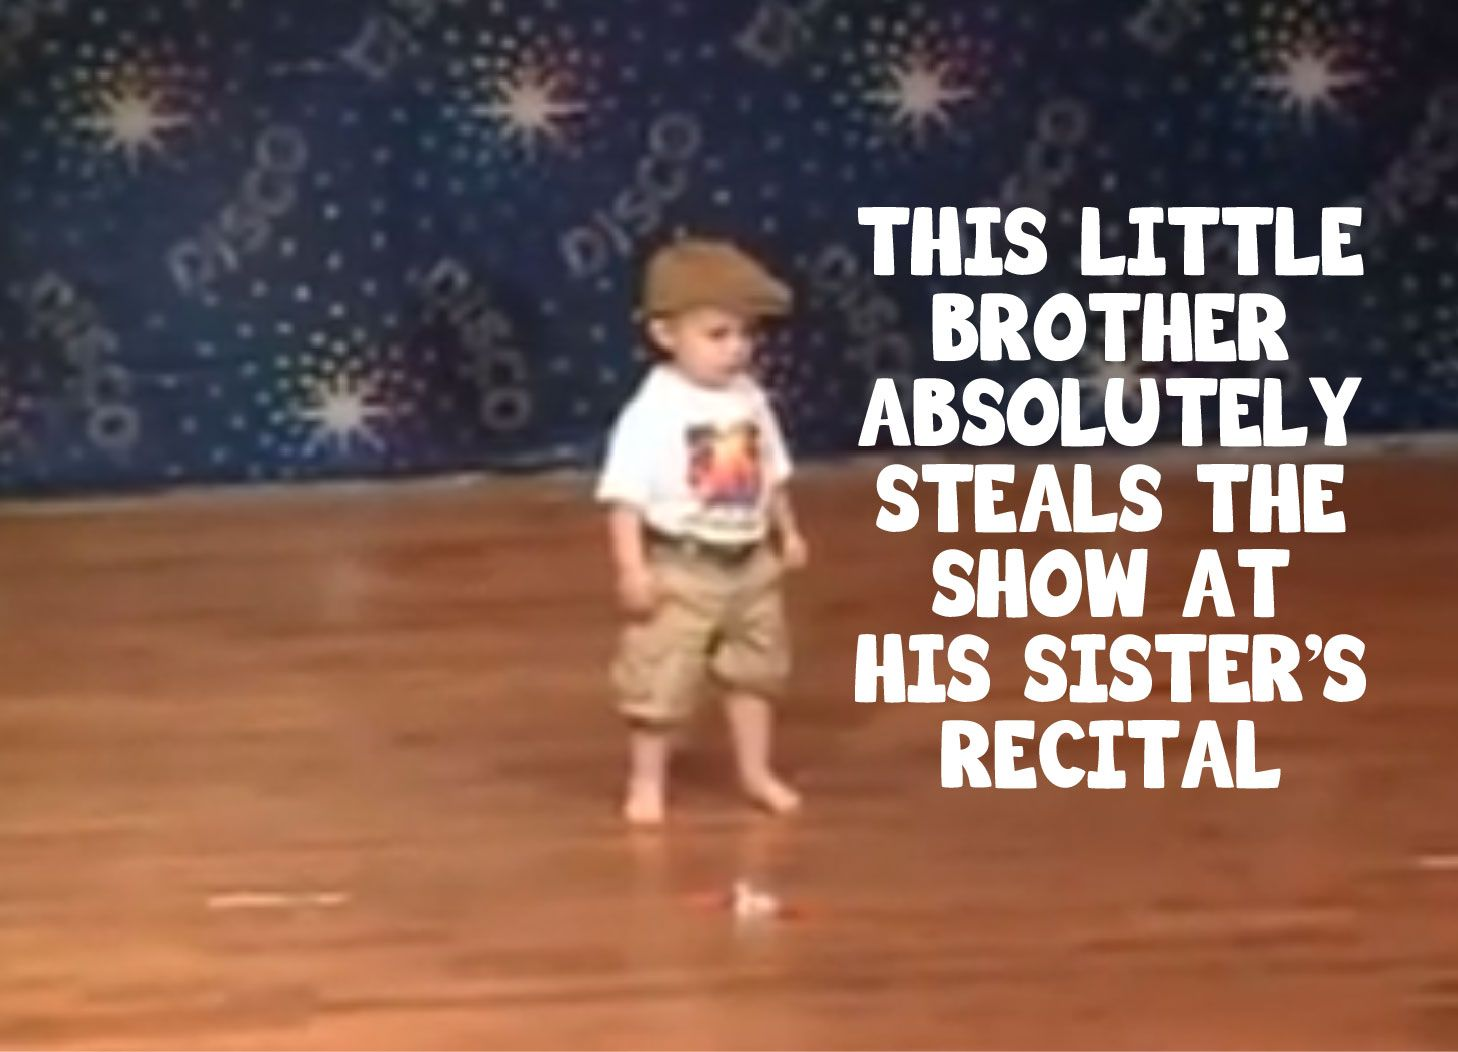 This little brother absolutely steals the show at his sister's recital!